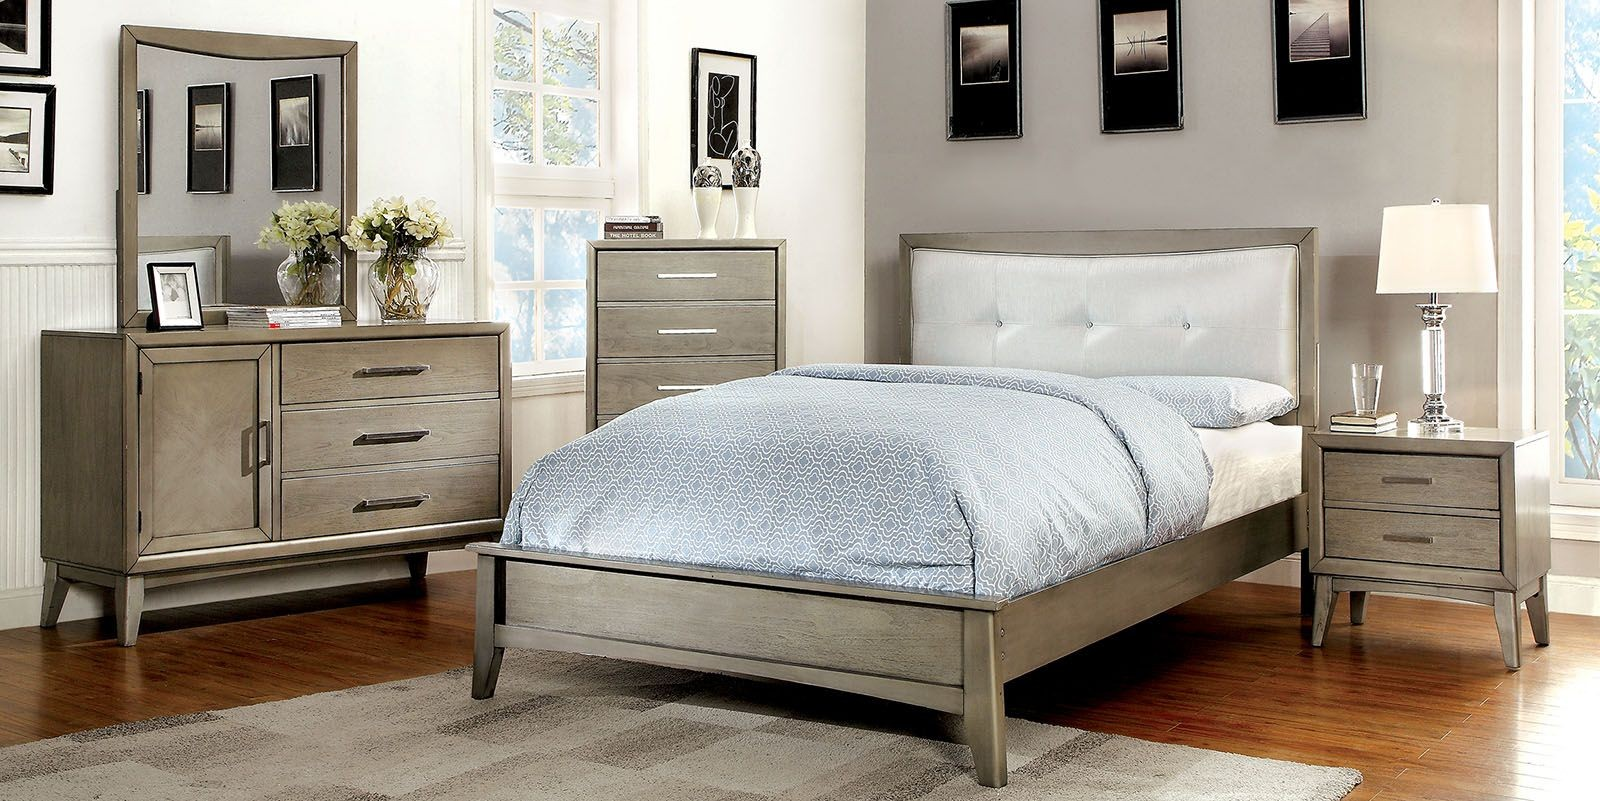 Snyder Ii Gray Youth Upholstered Bedroom Set From Furniture Of America Coleman Furniture